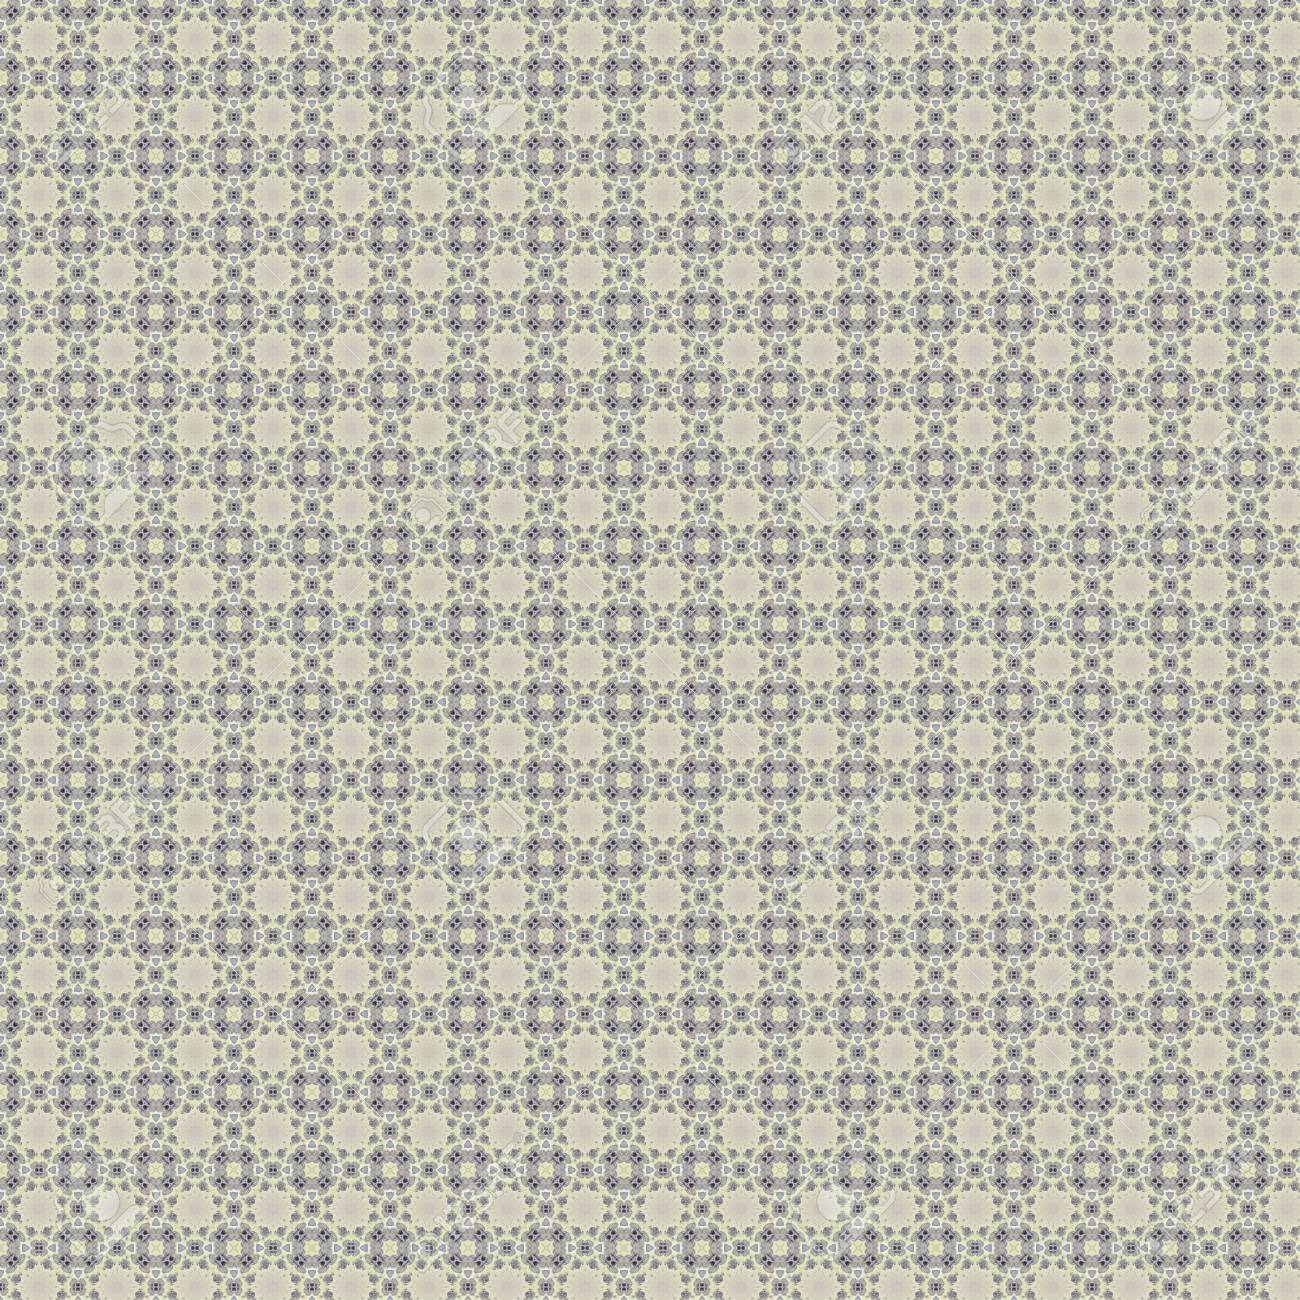 the vintage shabby background with classy patterns Stock Photo - 13865948